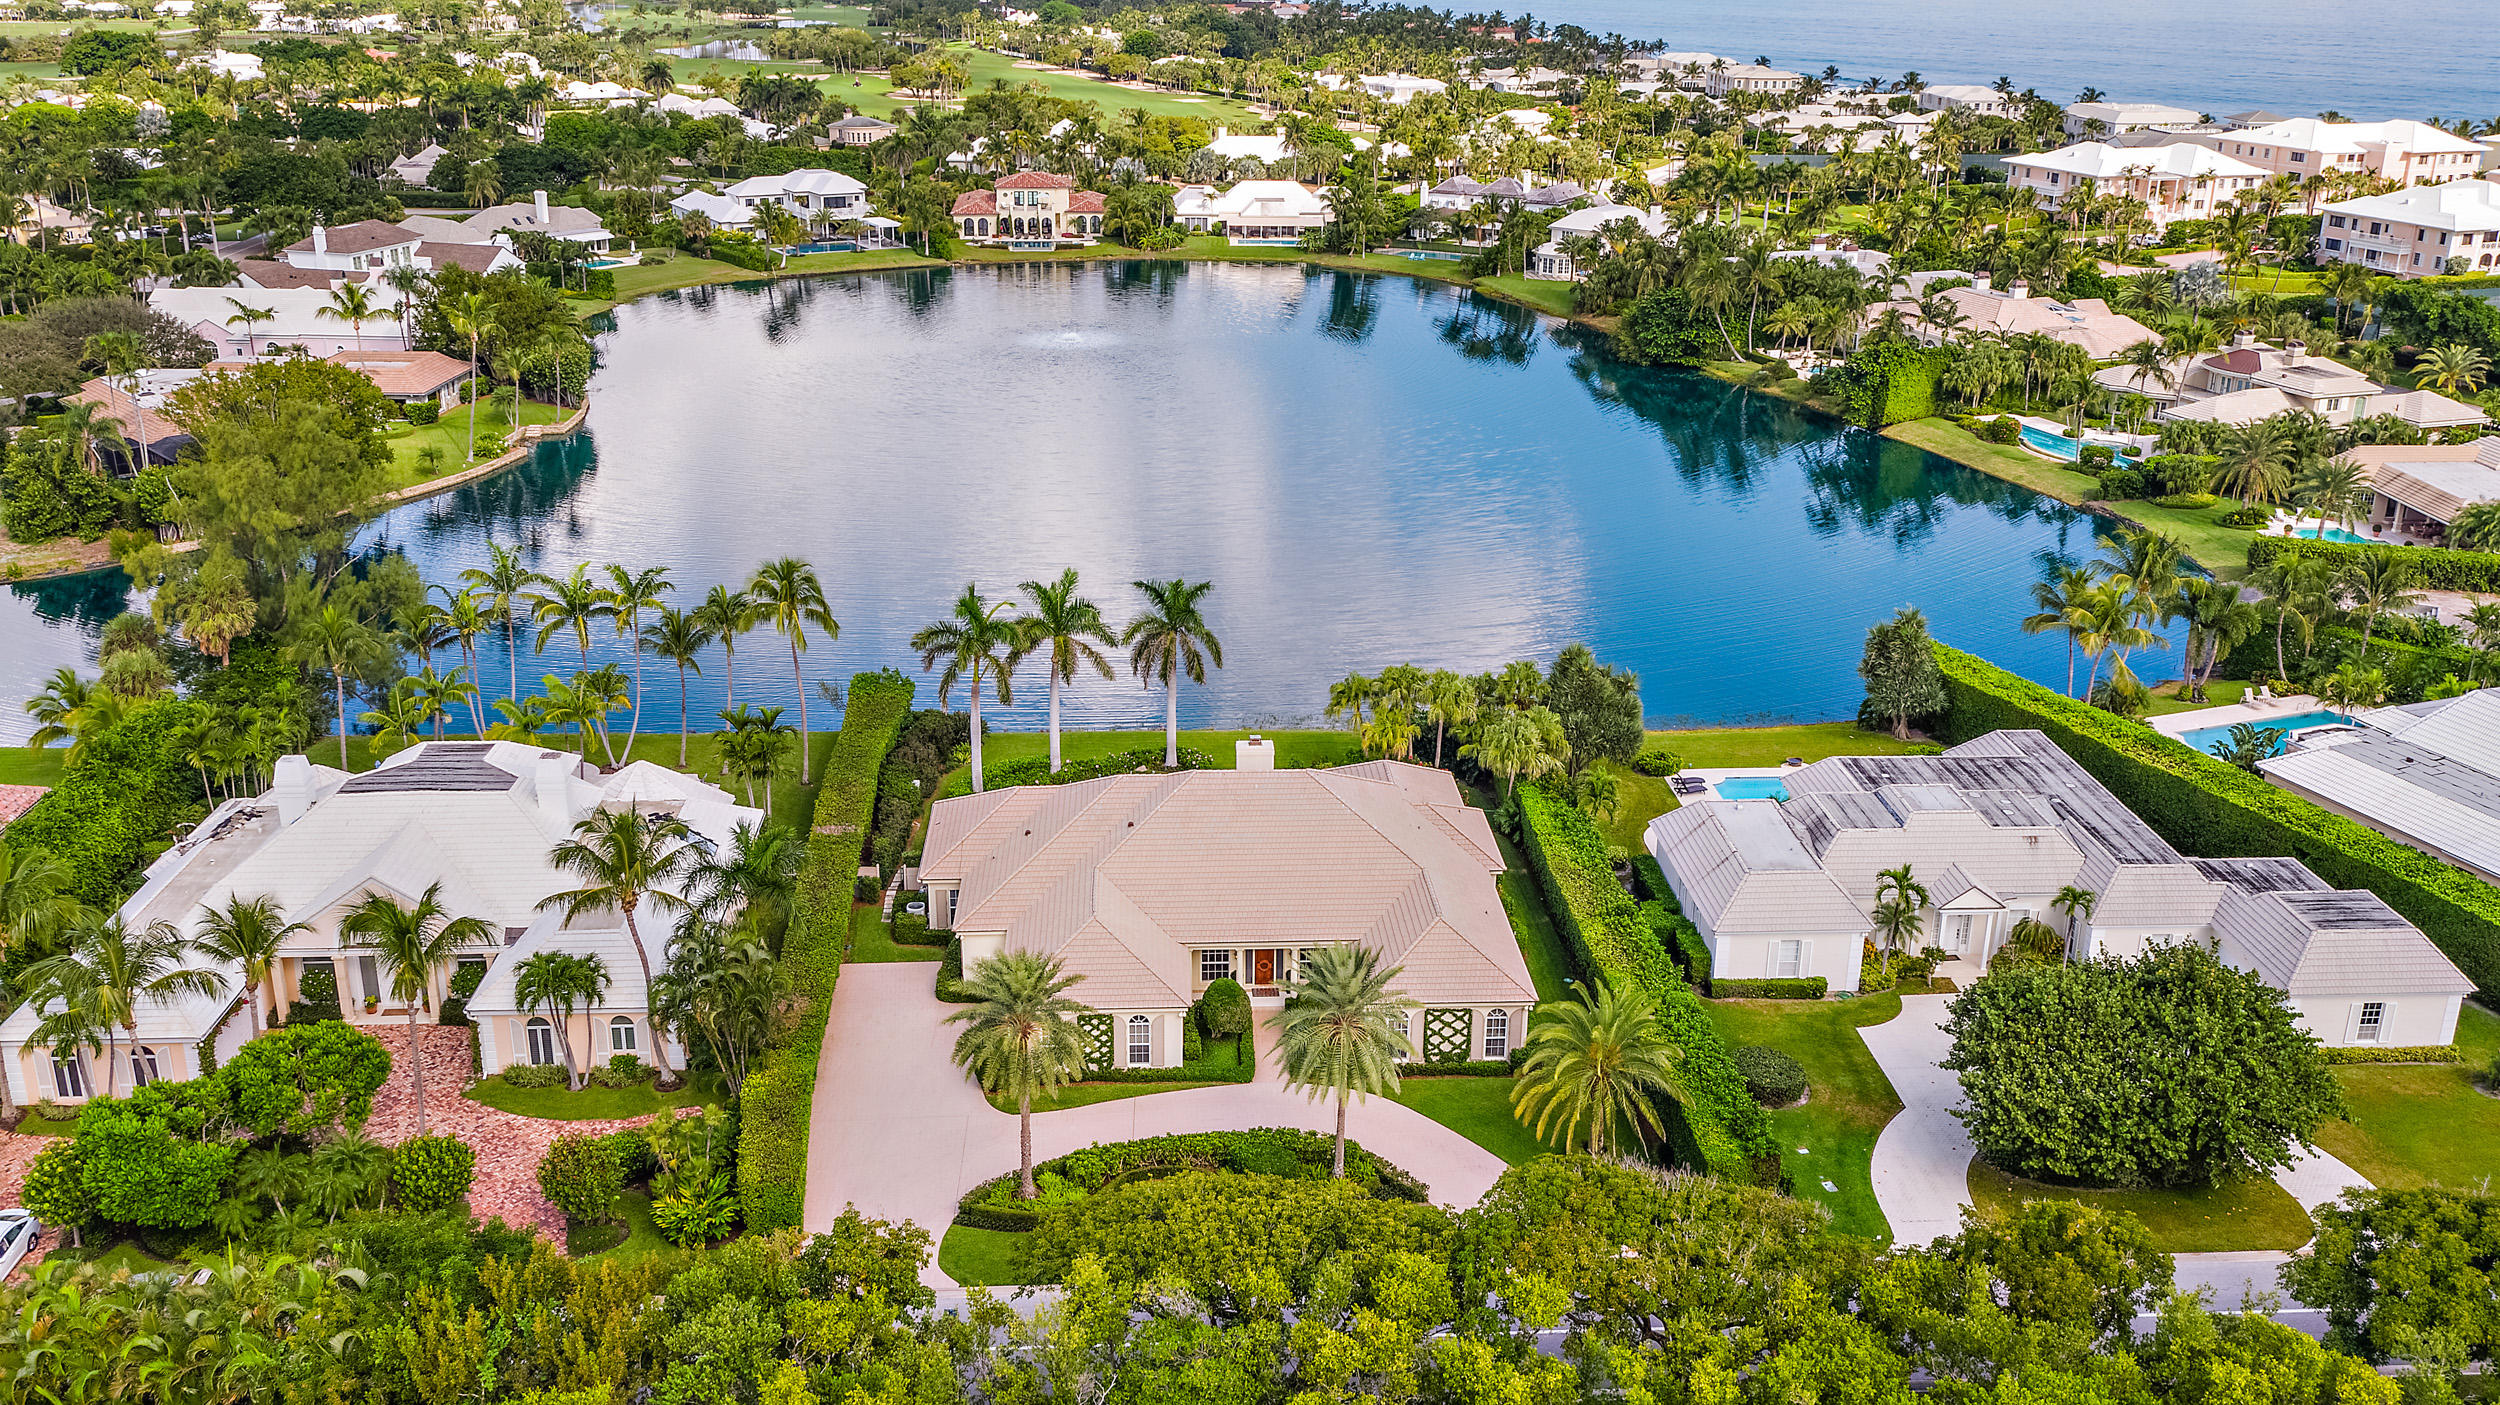 671 Turtle Beach Road, North Palm Beach, Florida 33408, 4 Bedrooms Bedrooms, ,4.1 BathroomsBathrooms,Single Family,For Sale,Turtle Beach,RX-10486753